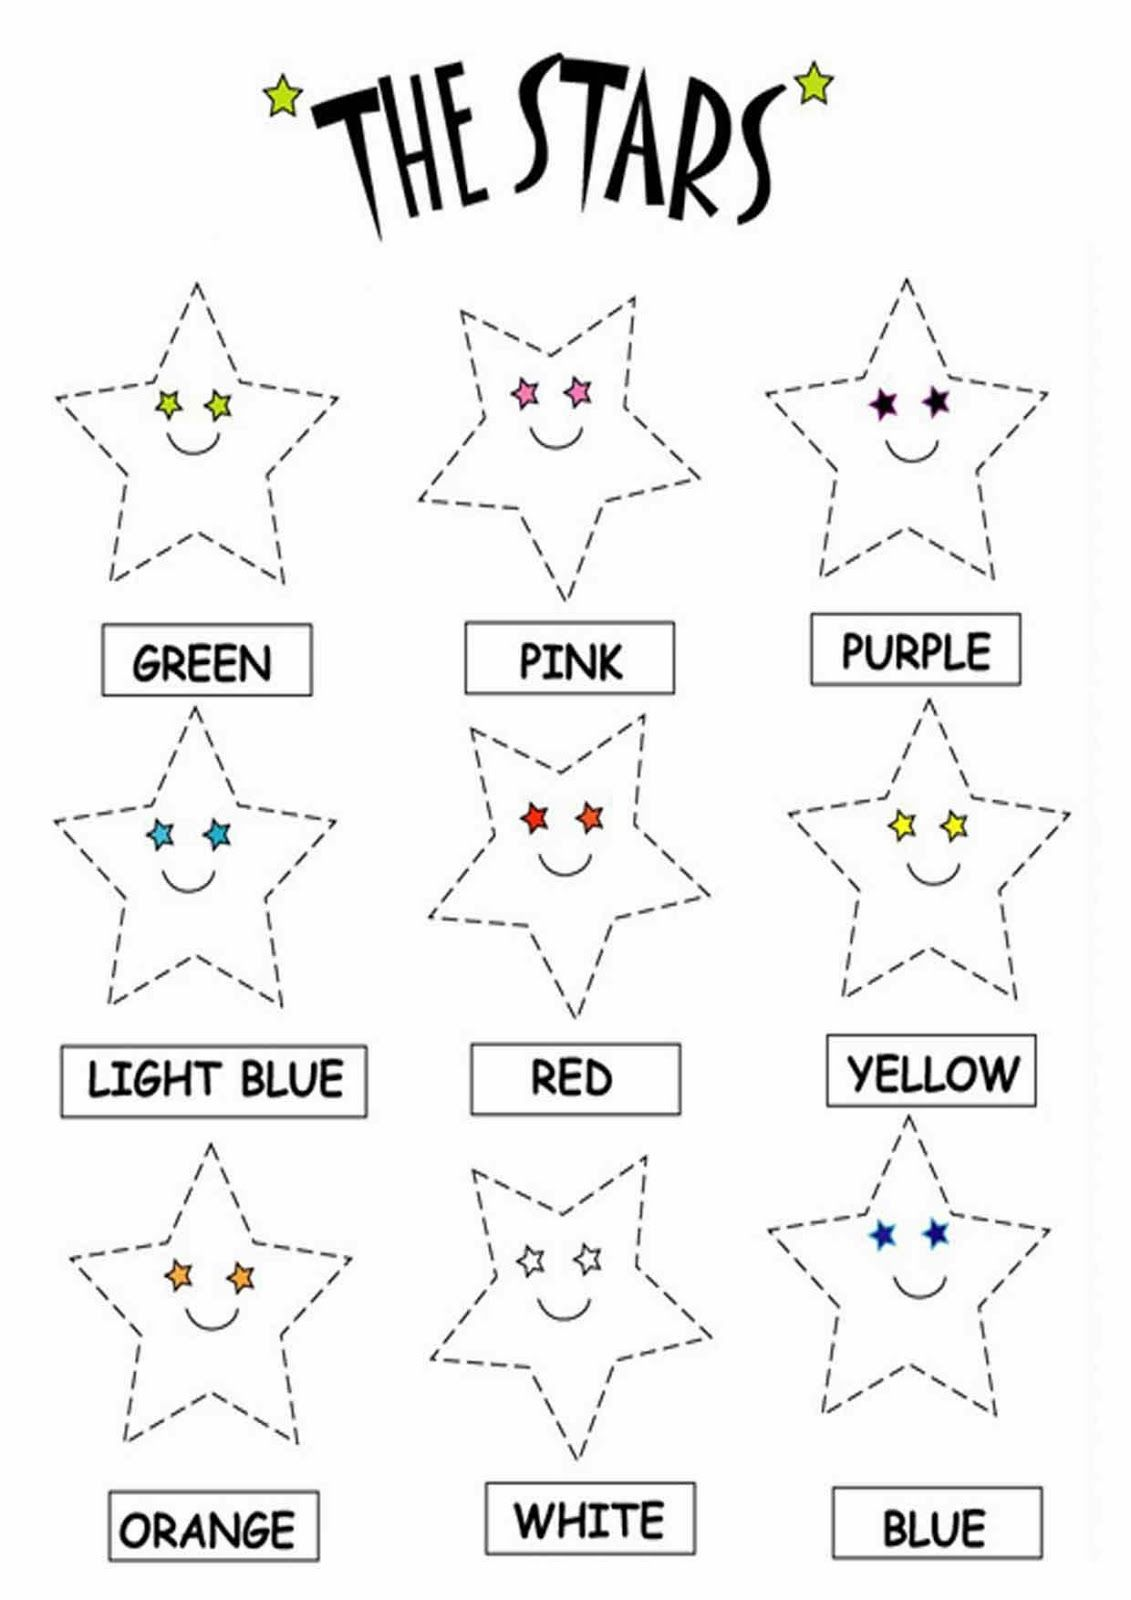 Color The Stars Worksheets Download Free Printable And Interactive Online Color The Stars